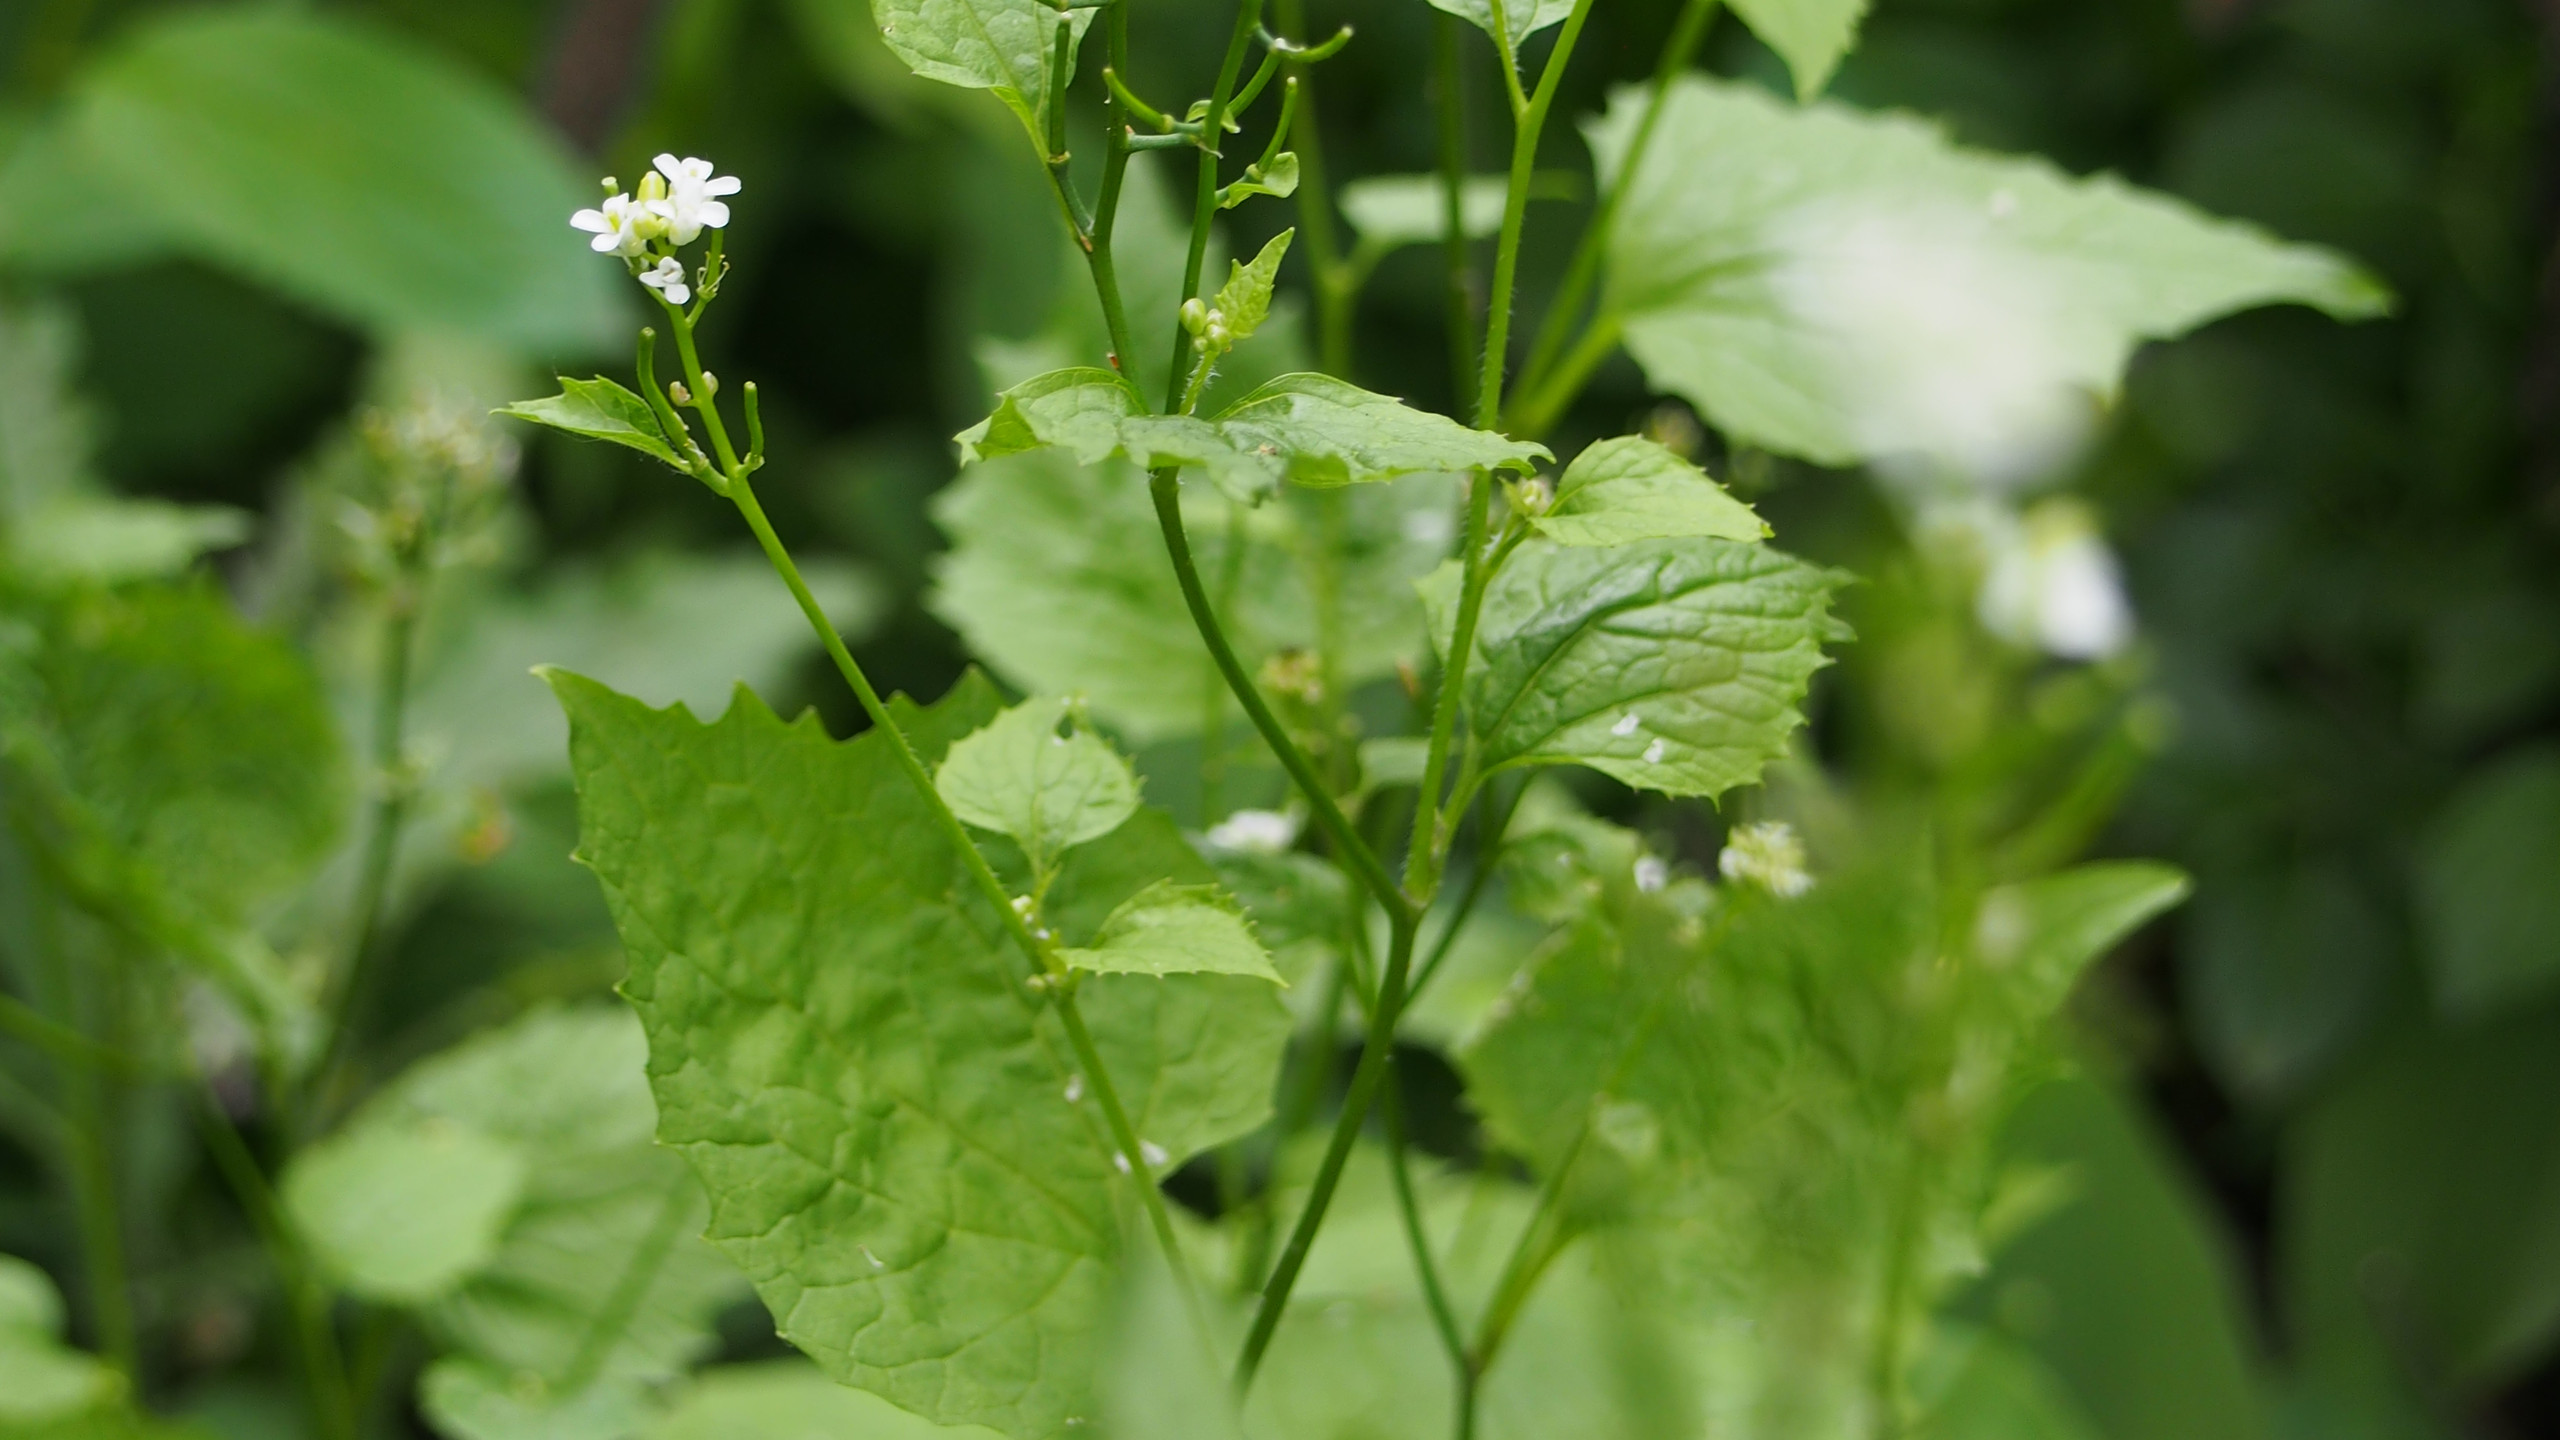 Garlic Mustard (alliaria petiolata) with flowers and siliques